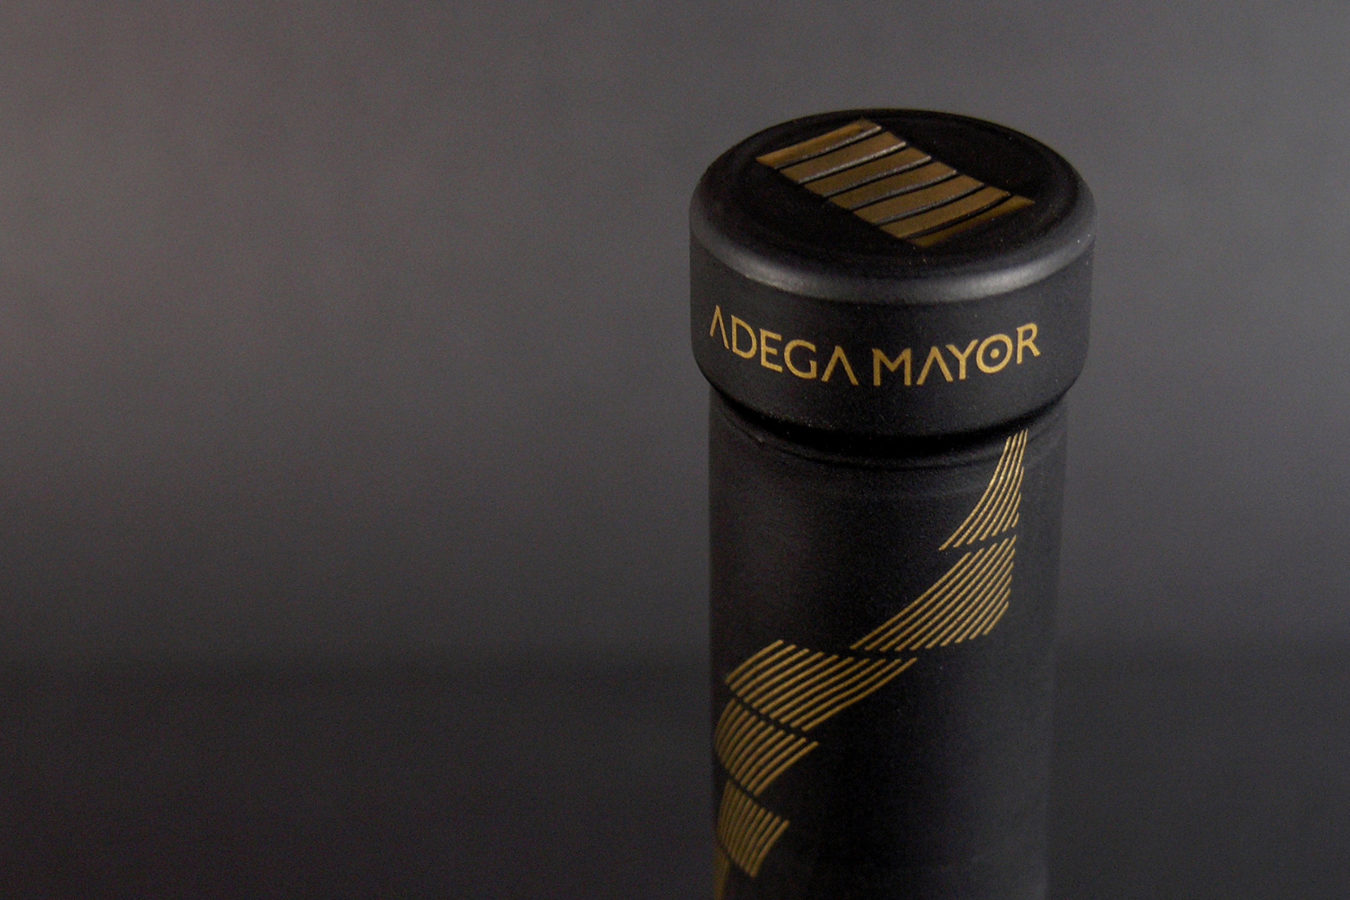 Wine 7<br>Adega Mayor